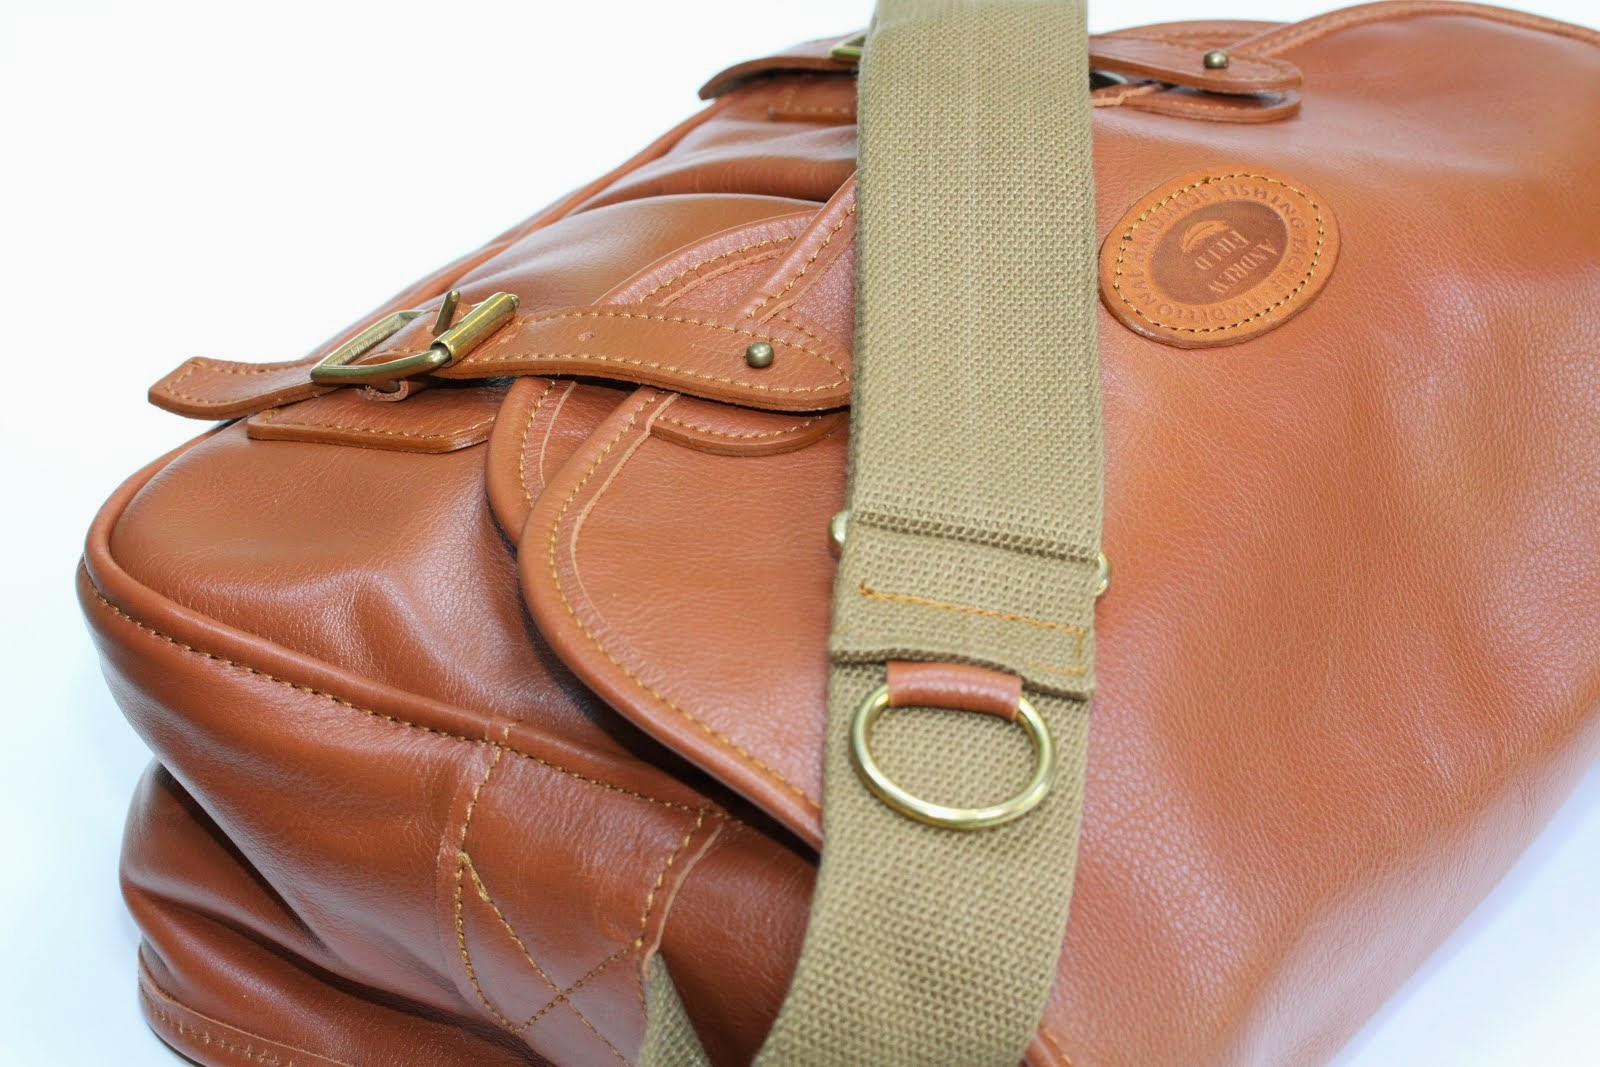 Full Leather Fishing Bag